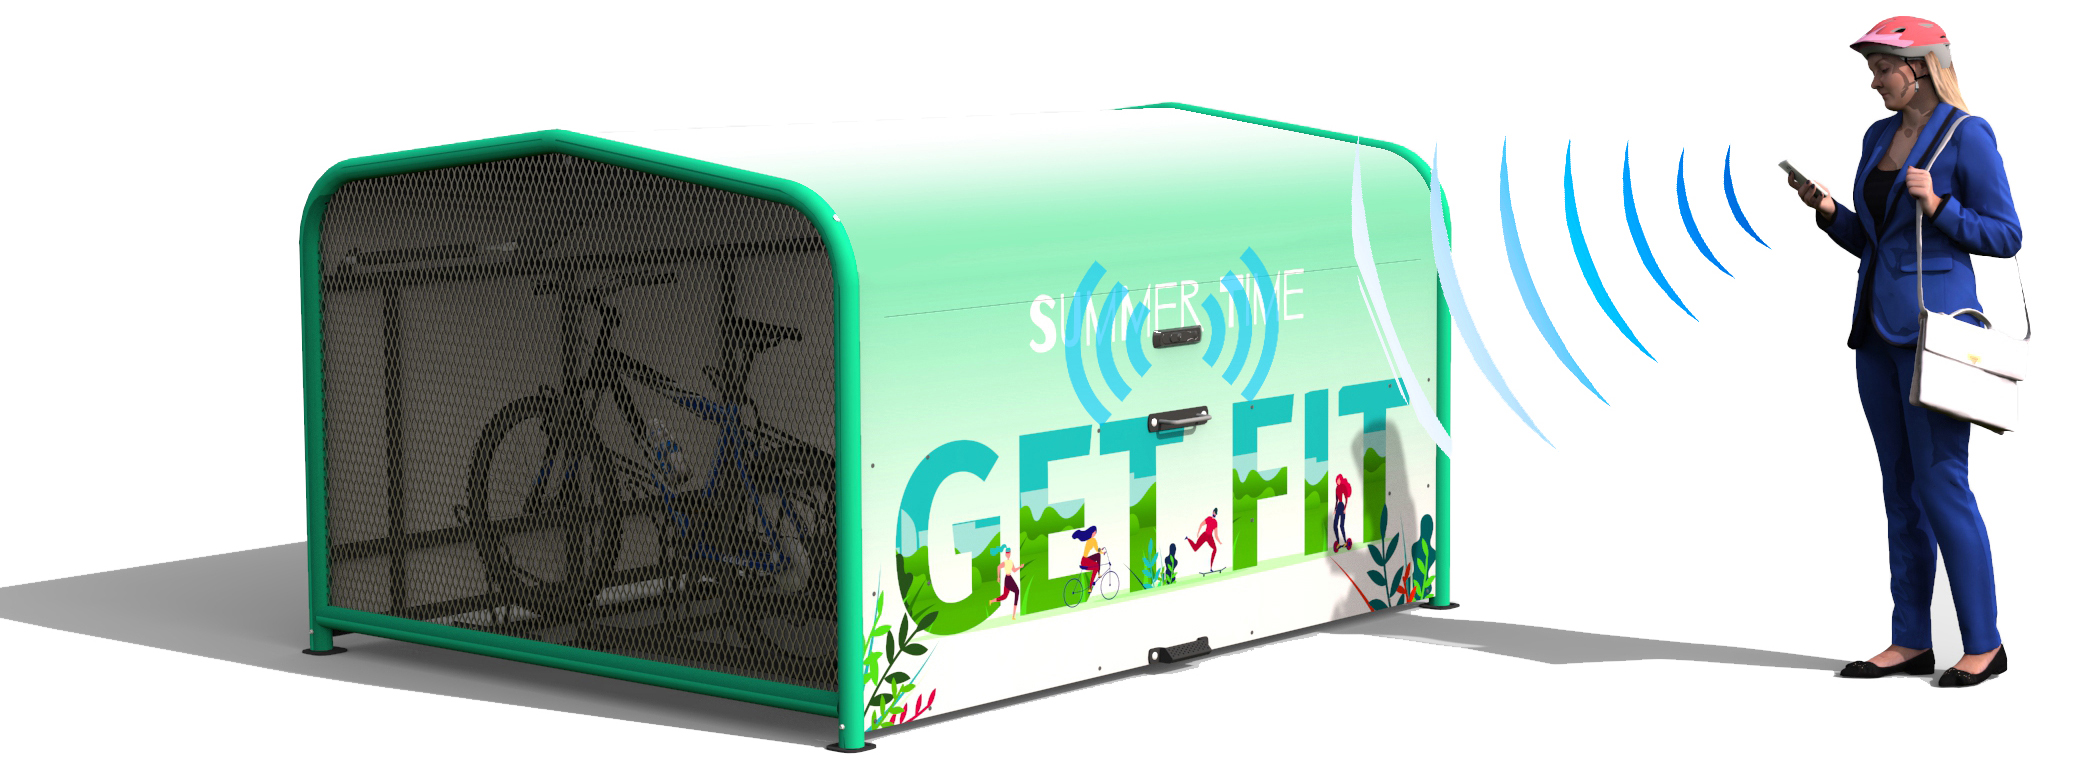 FalcoPod Bike Hangar with Mobile App Access